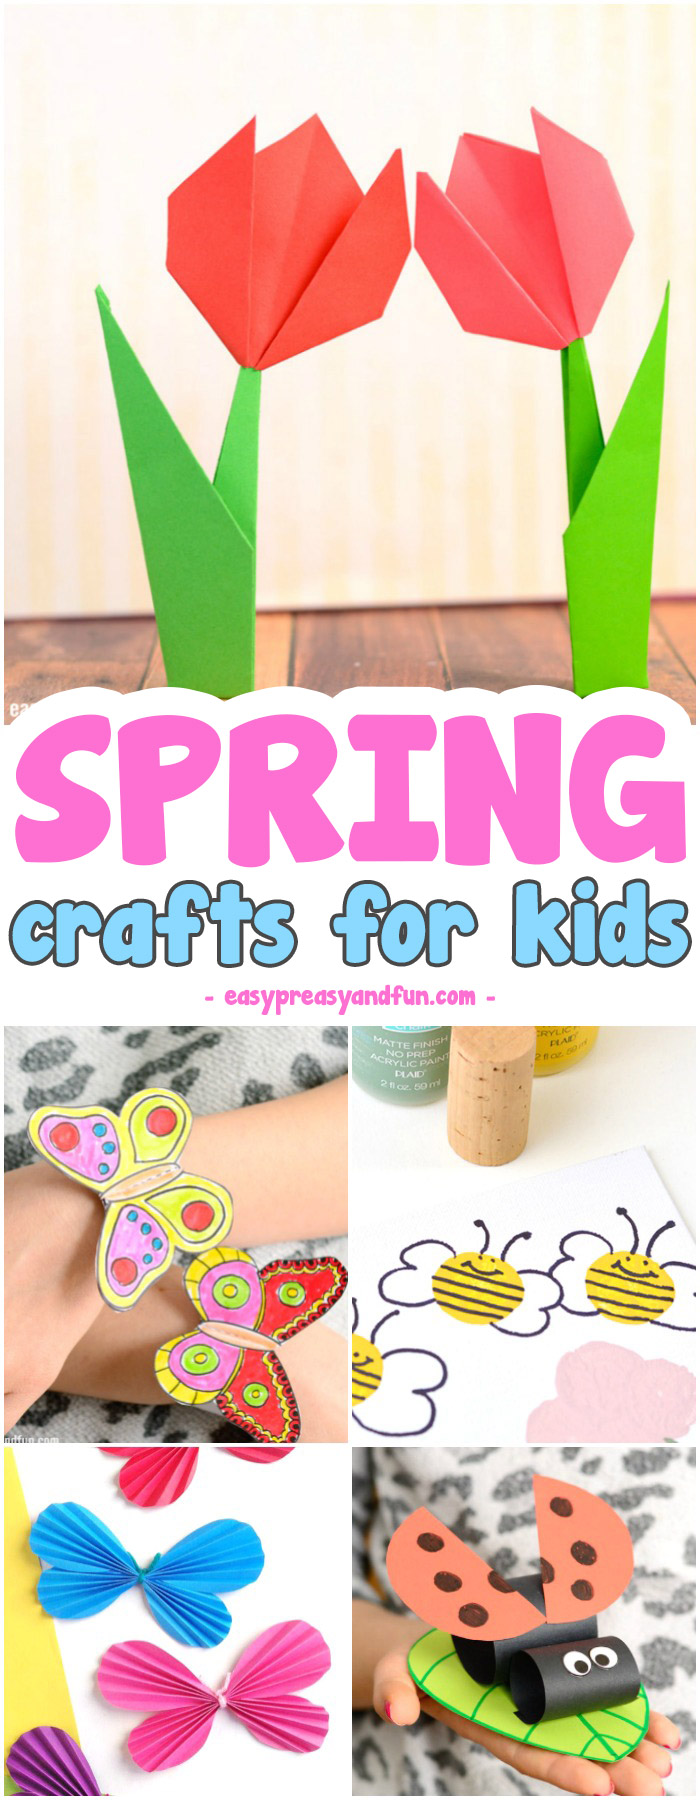 medium resolution of Spring Crafts for Kids - Art and Craft Project Ideas for All Ages - Easy  Peasy and Fun